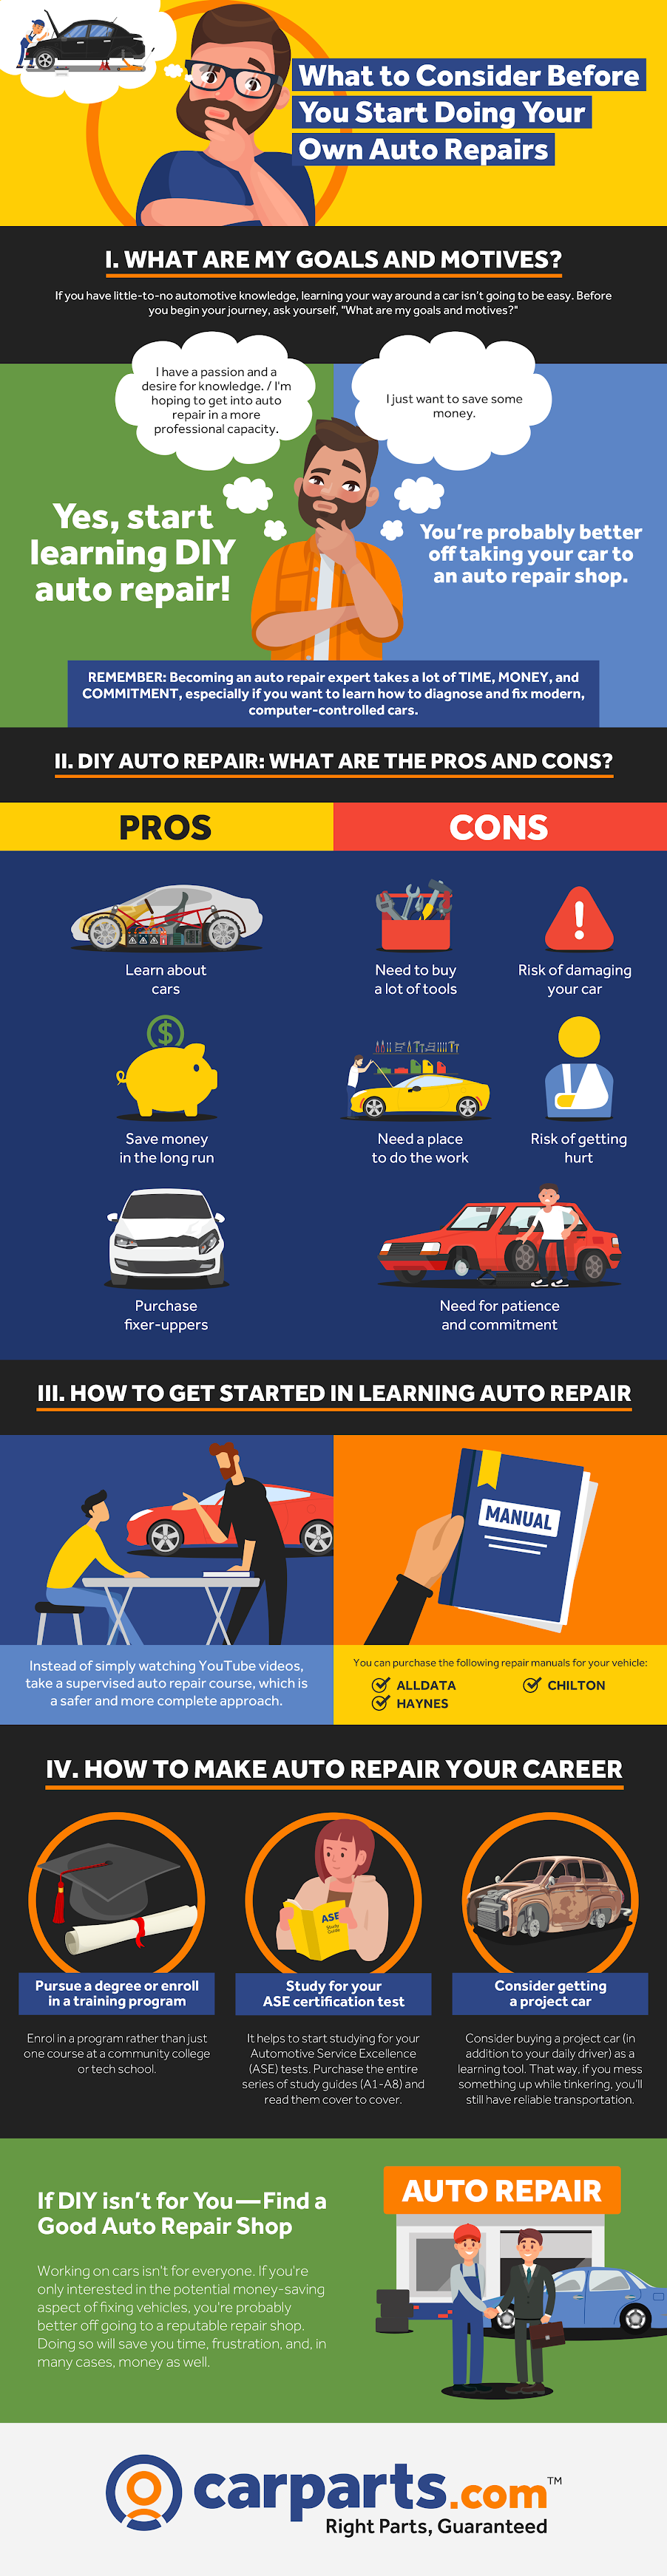 What to Consider Before You Start Doing Your Own Auto Repairs #infographic #Automotive #Auto Repairs